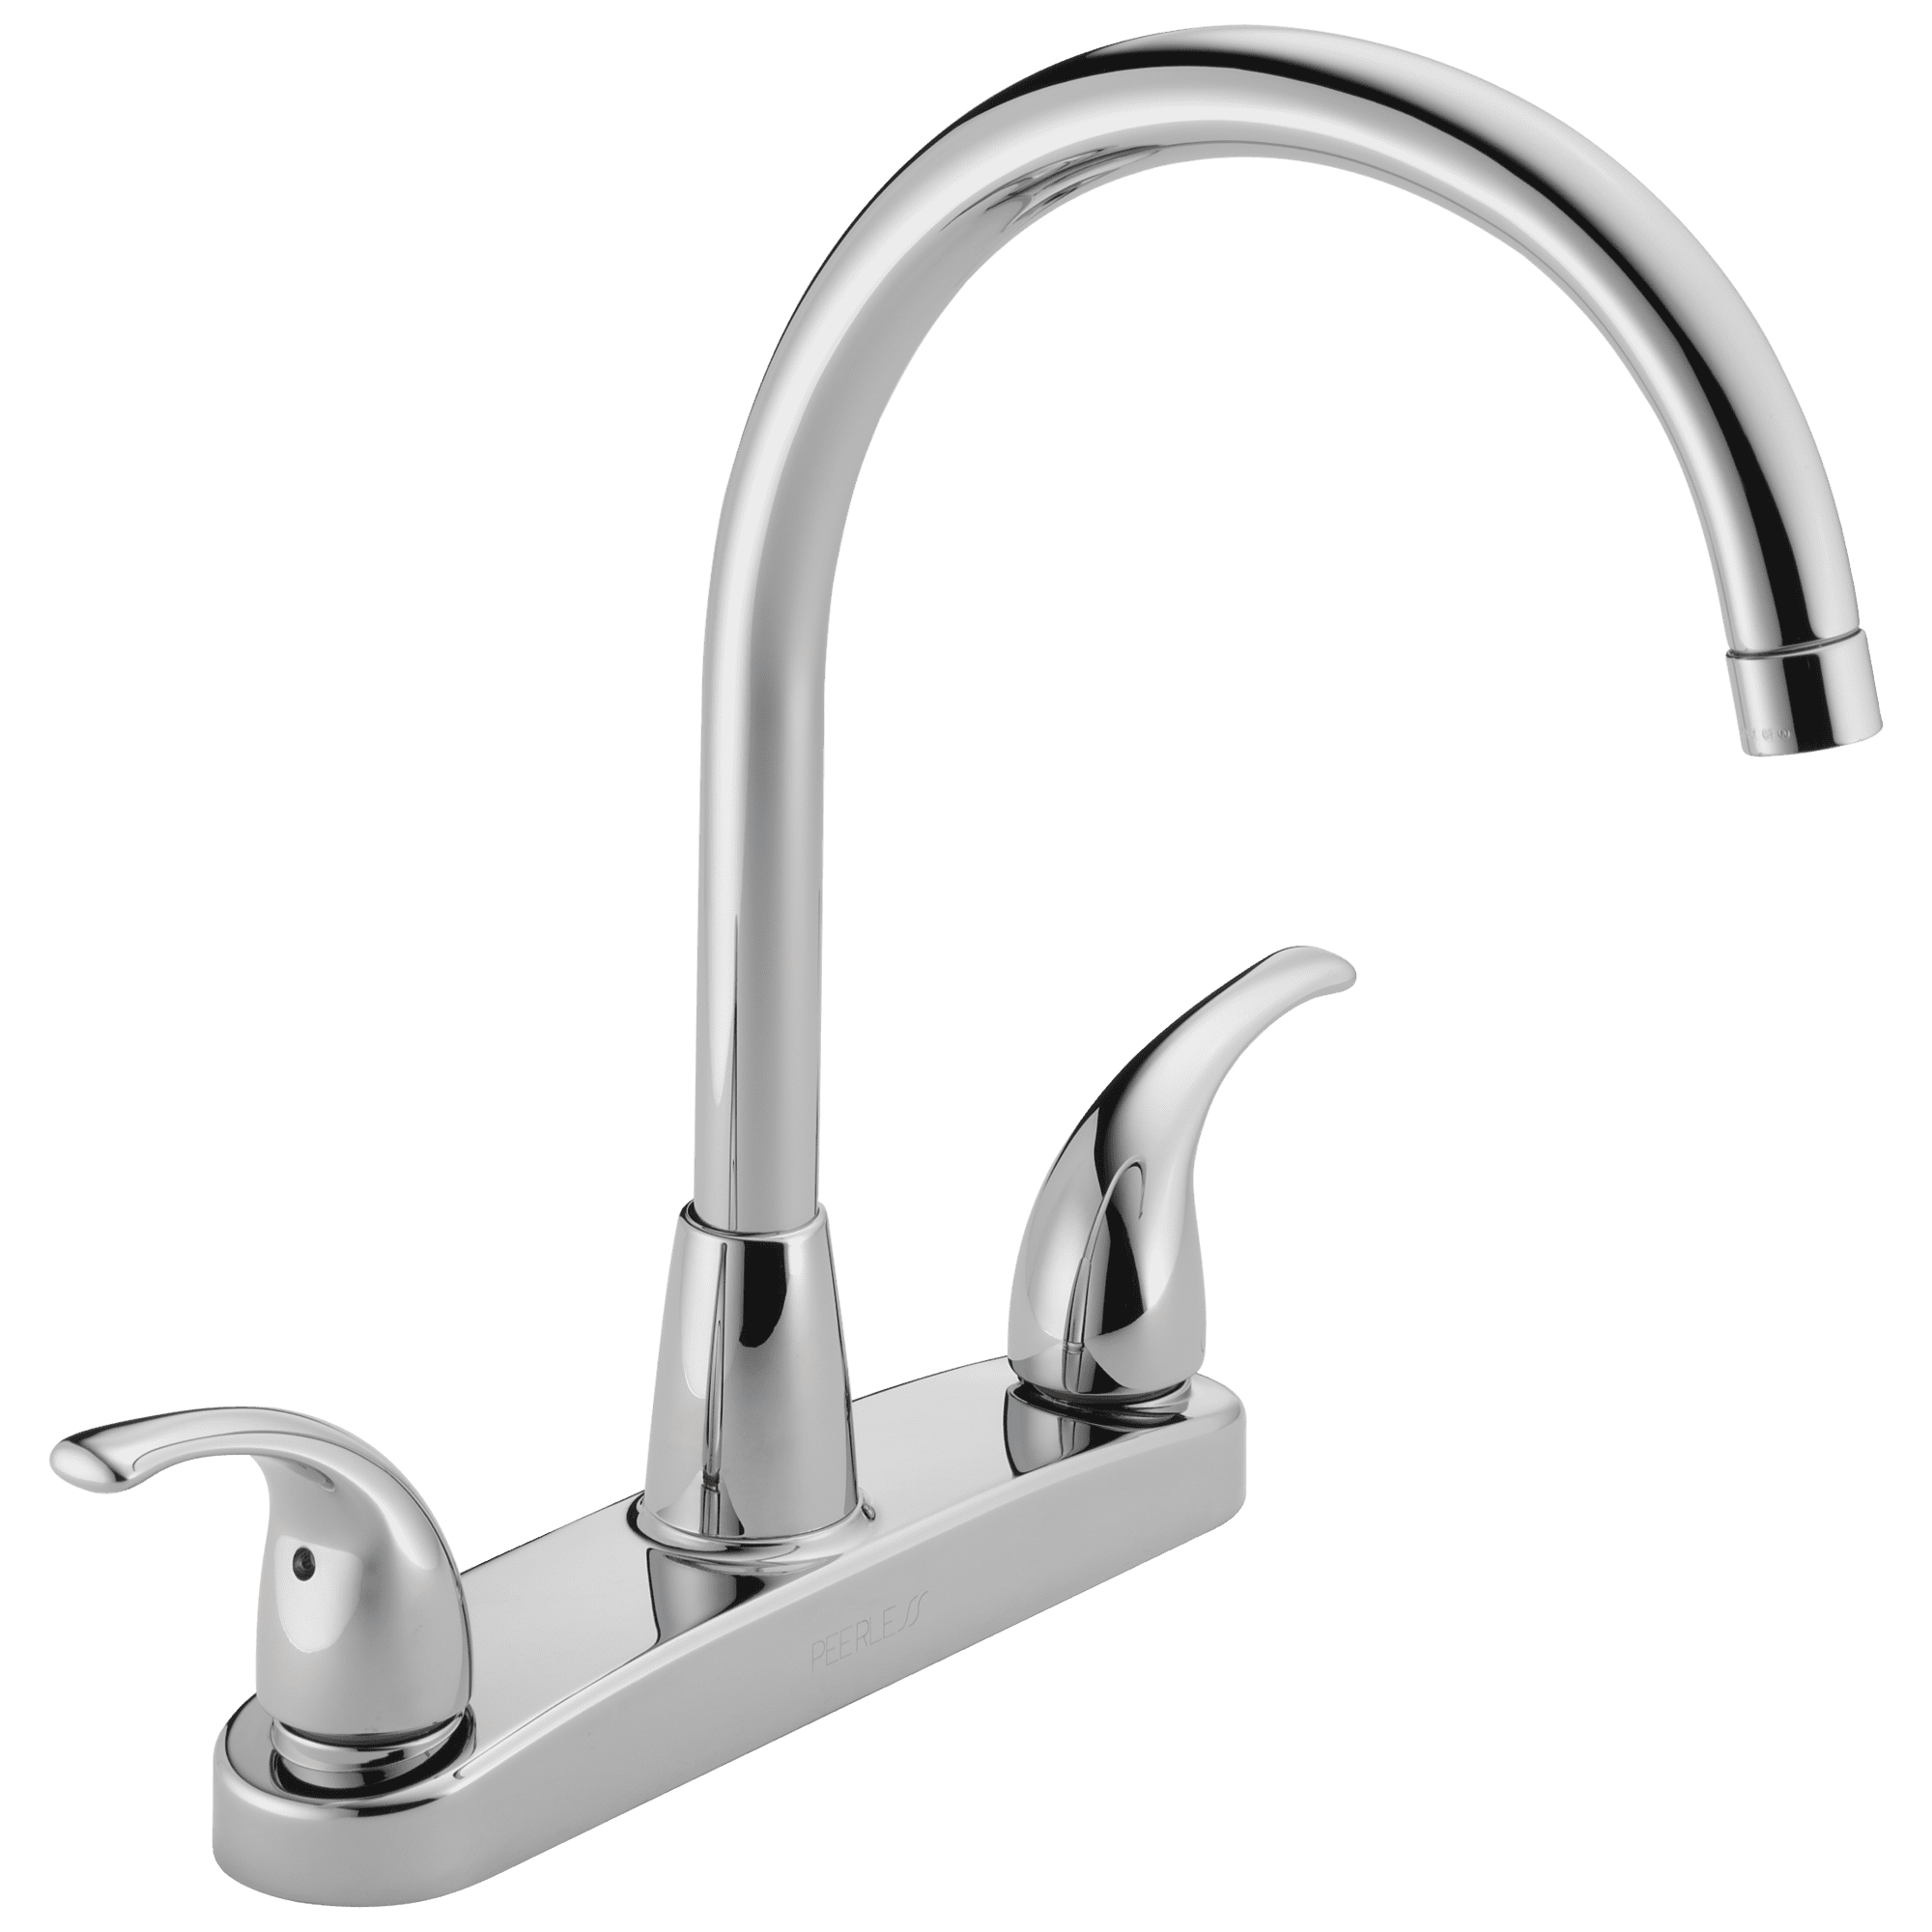 Peerless Tunbridge Two Handle Deck Mount Kitchen Faucet In Chrome P299568lf Walmart Com Walmart Com